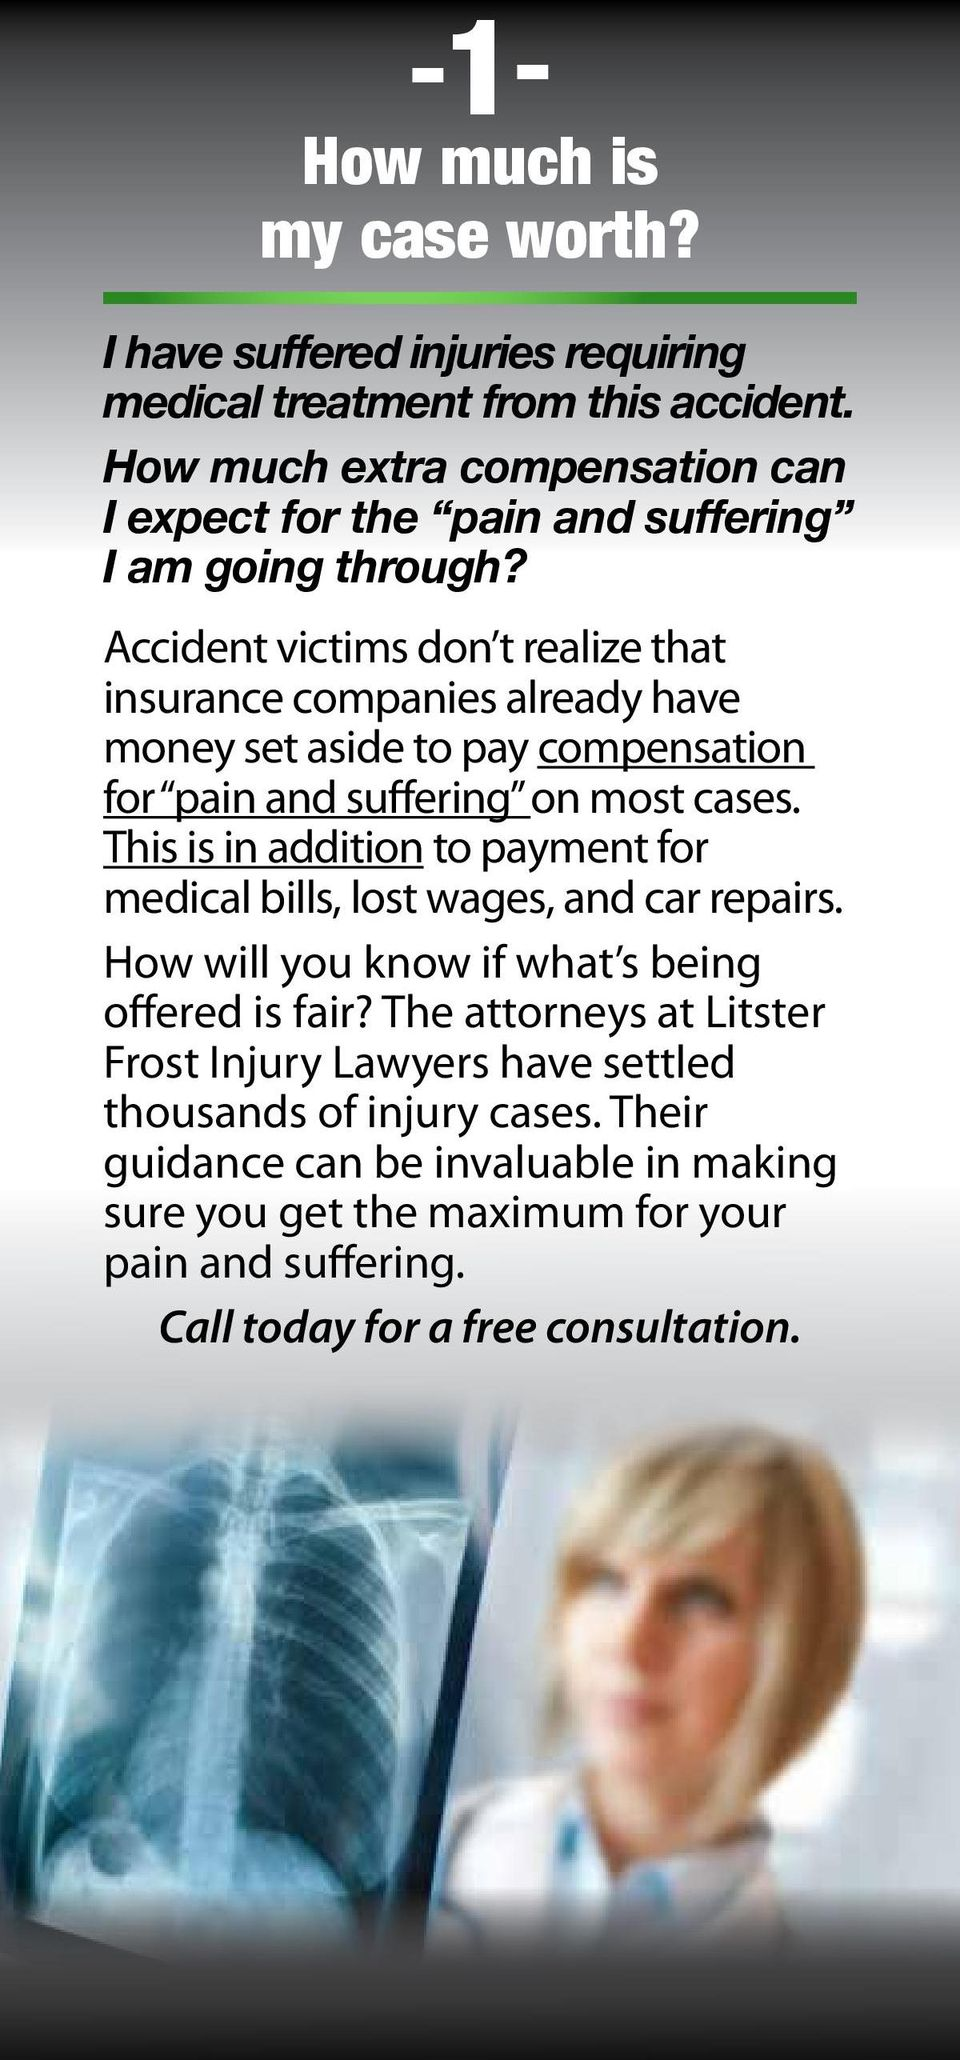 Accident victims don t realize that insurance companies already have money set aside to pay compensation for pain and suffering on most cases.